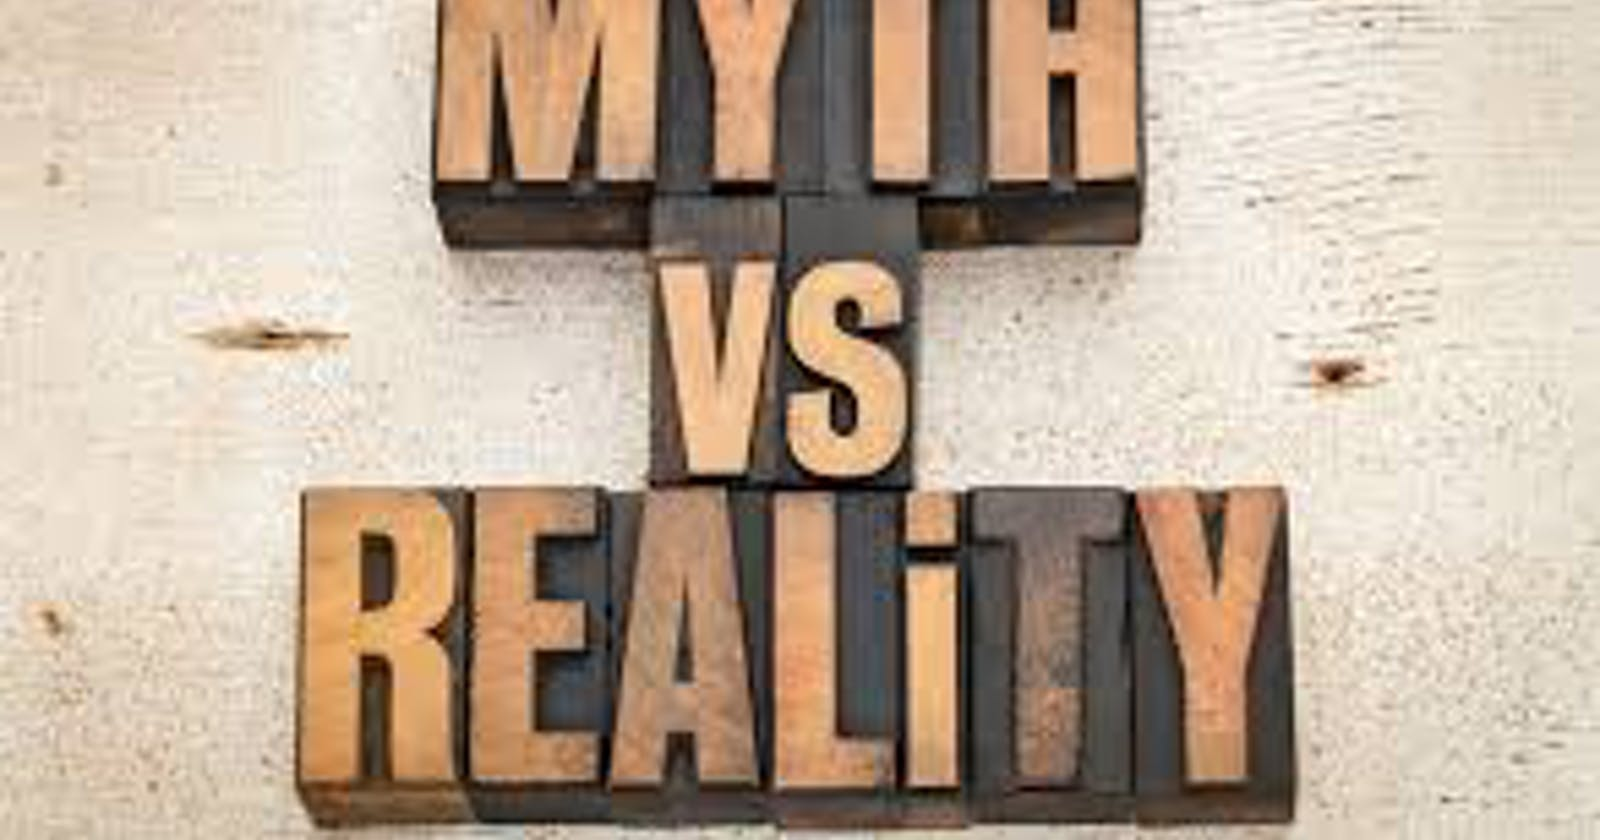 Myths Stopping You From Being A Developer